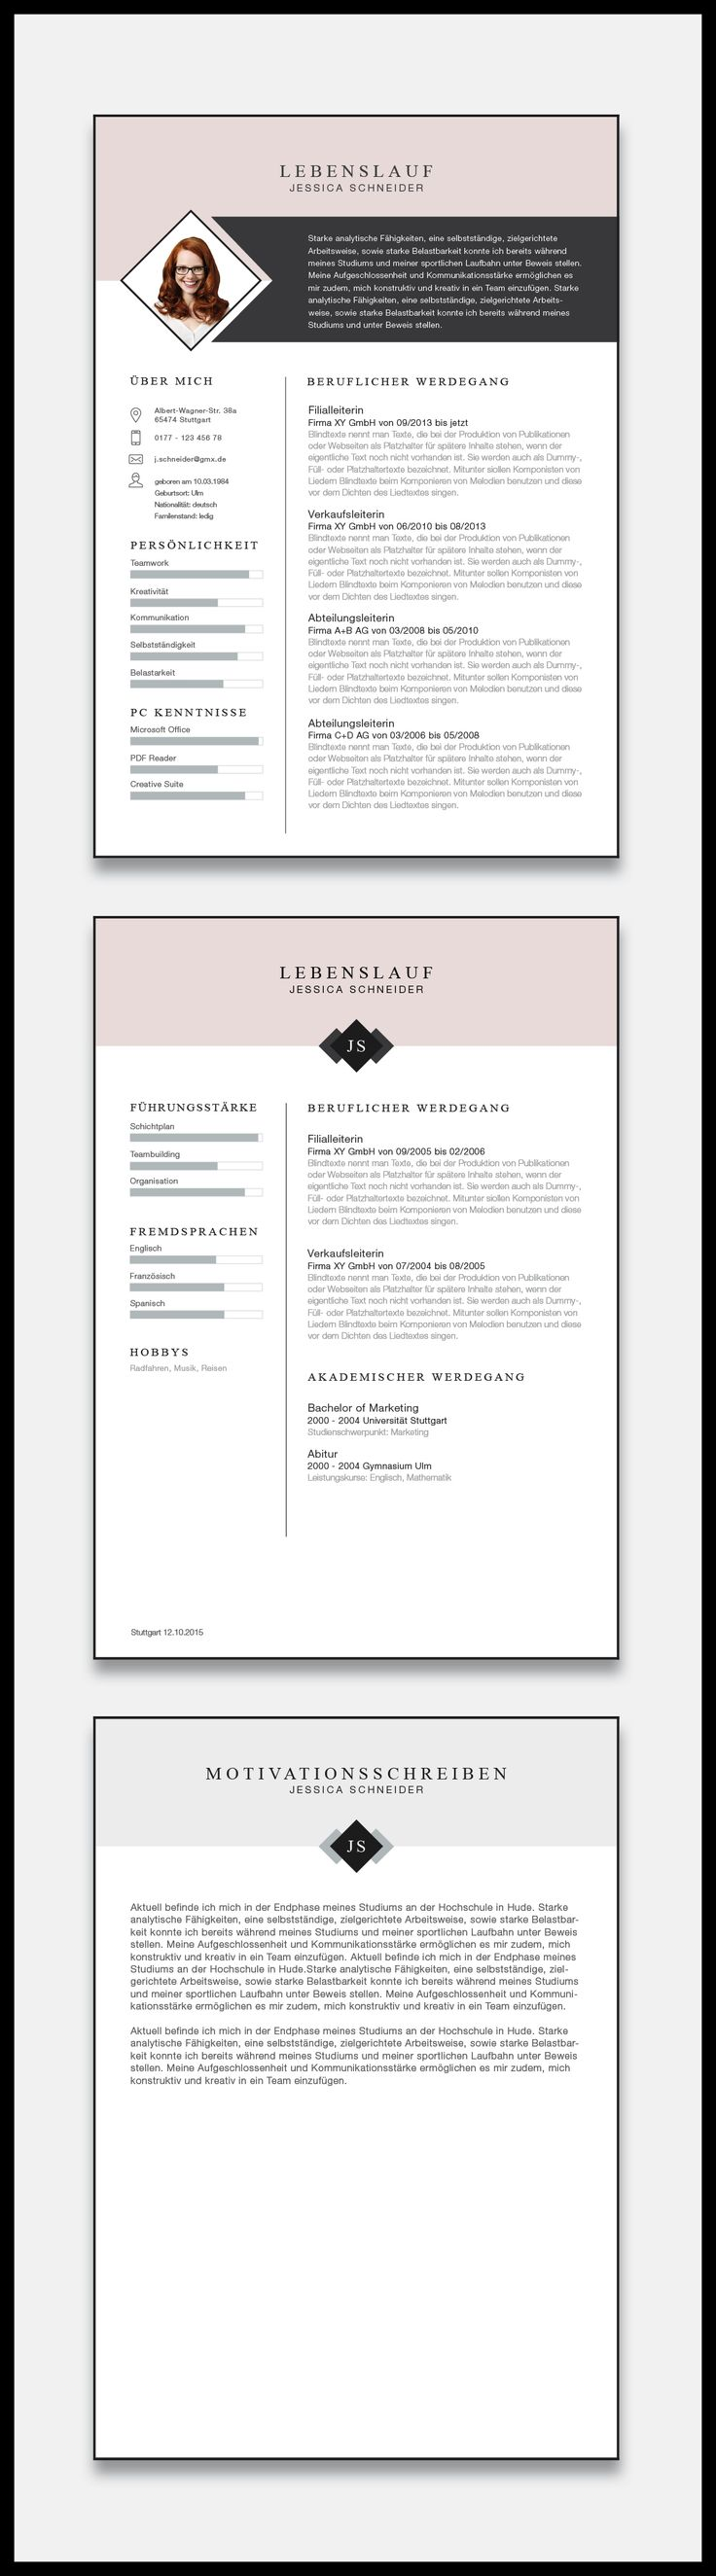 14 best Cv images on Pinterest | Resume templates, Cv template and ...